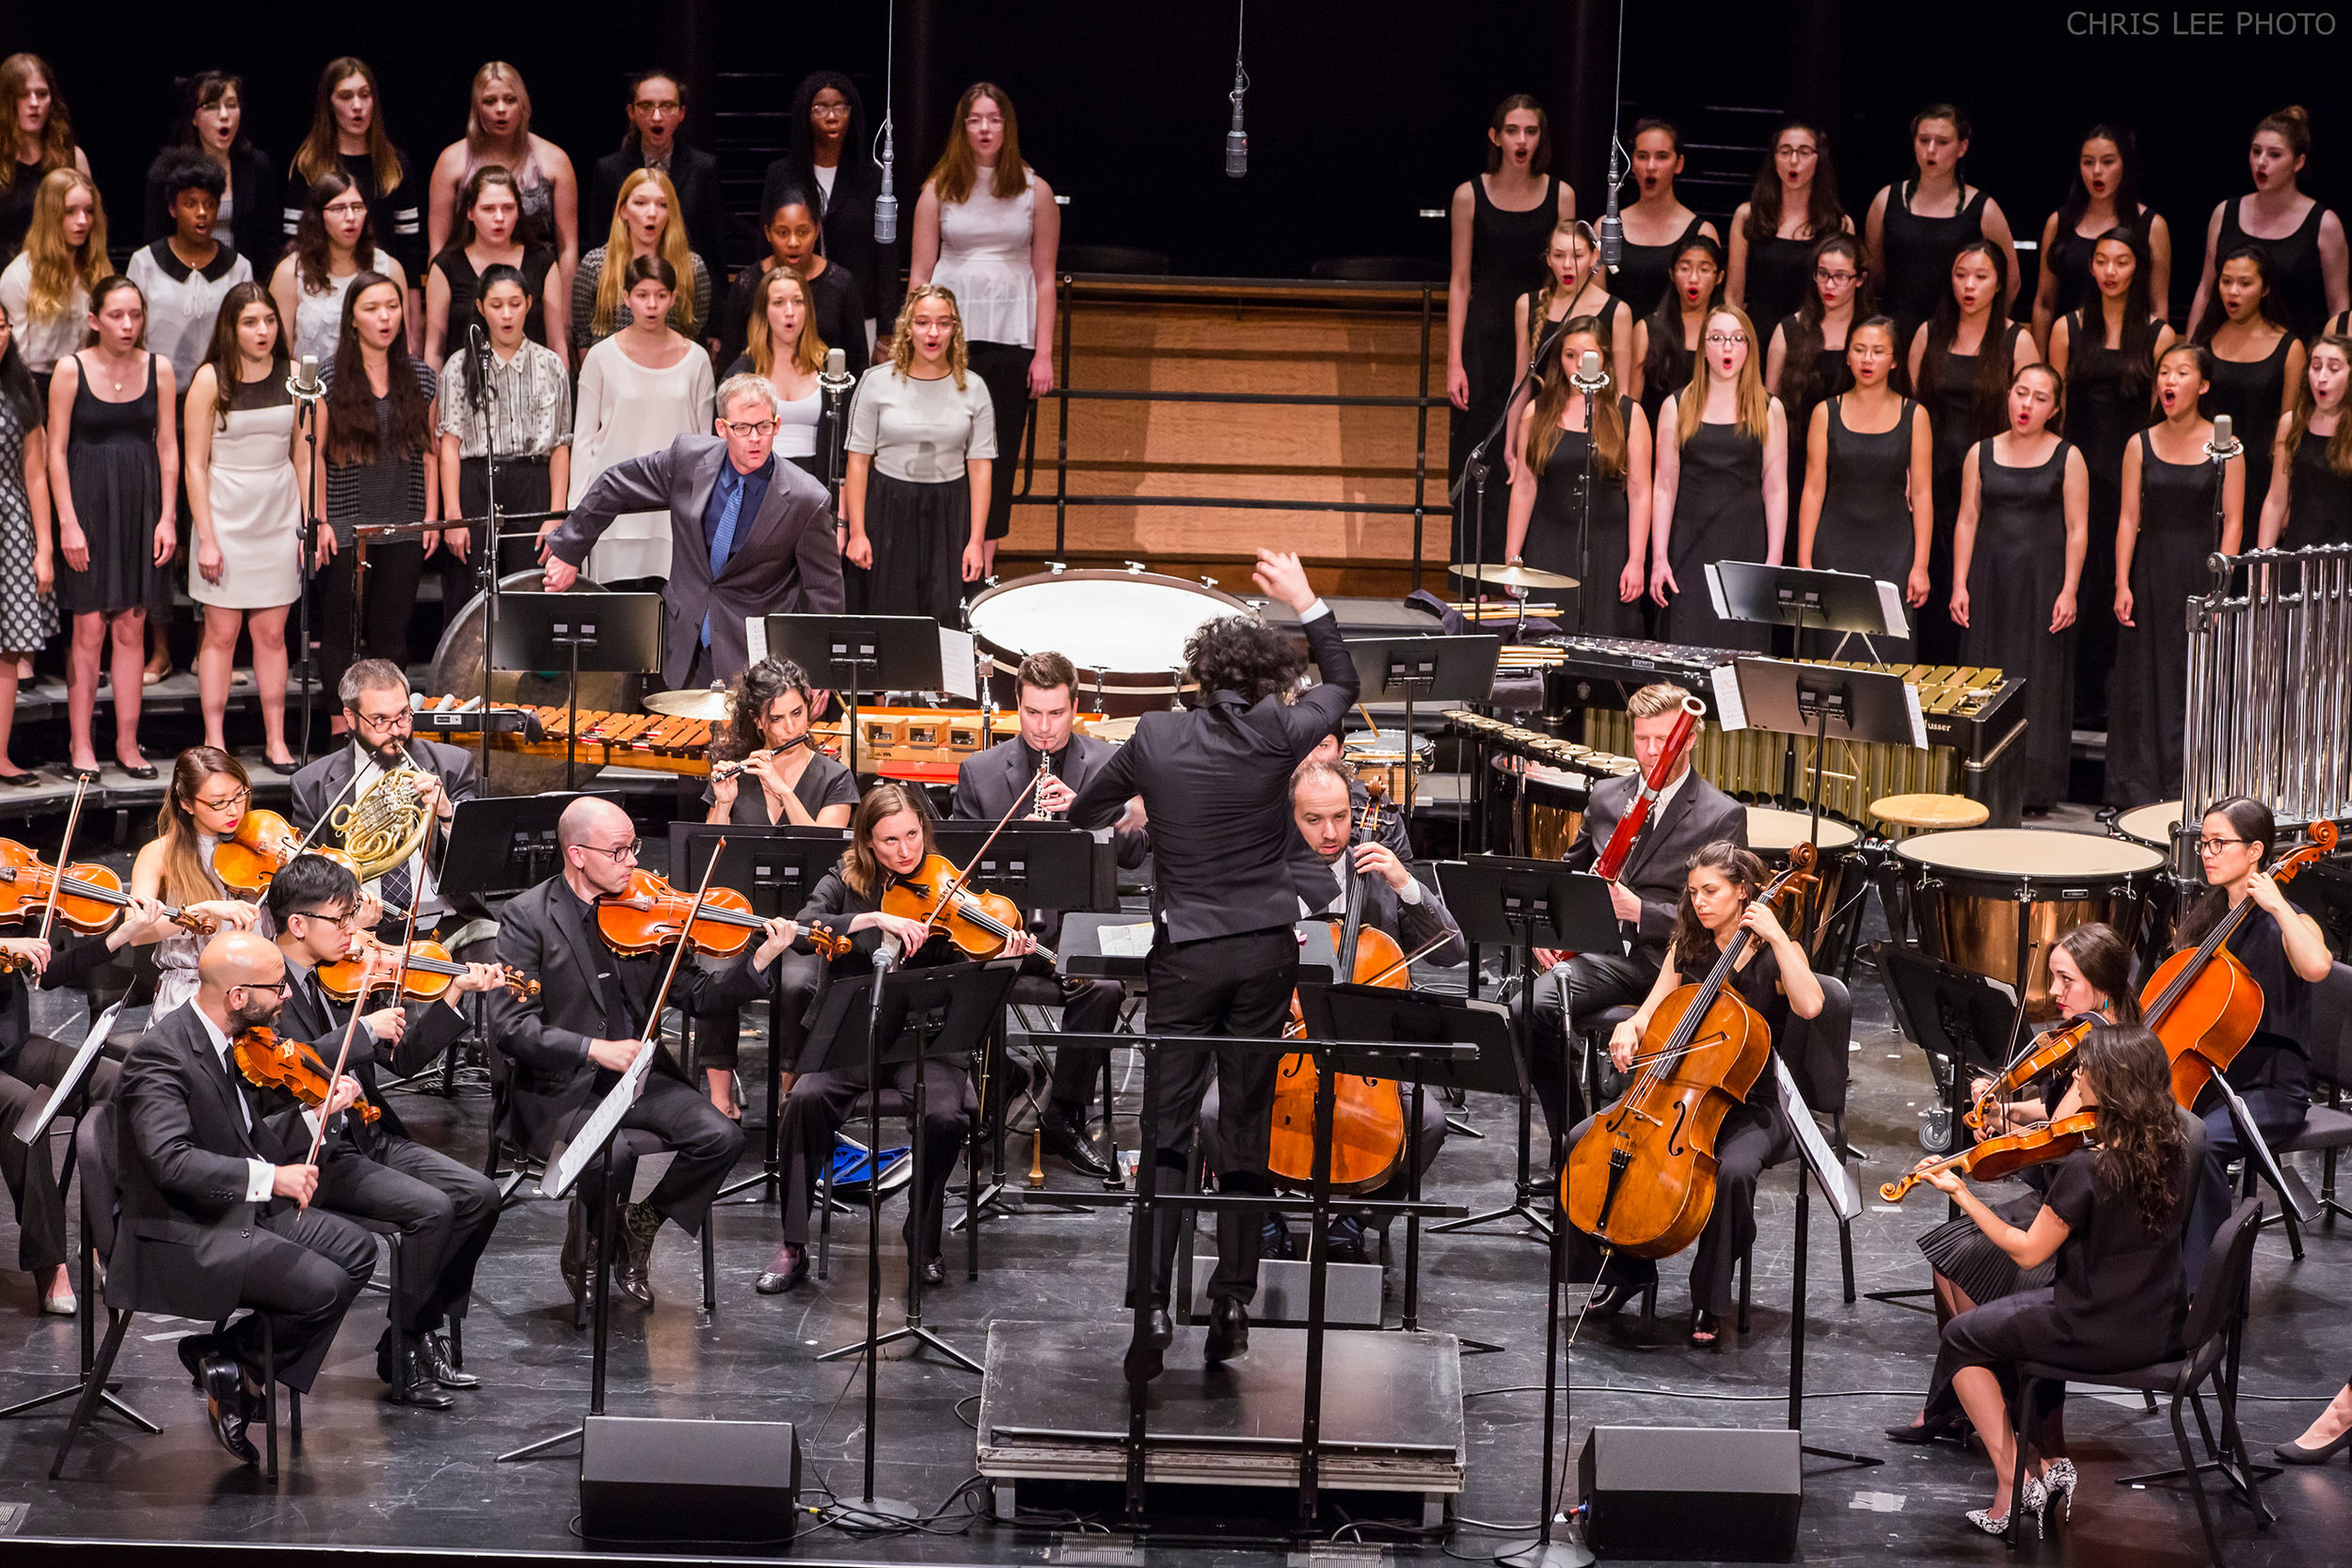 SF Girls Chorus in concert with The Knights and Brooklyn Youth Chorus at the NY Phil 2016 Biennial Festival. Photograph courtesy New York Philharmonic, Chris Lee Photographer.